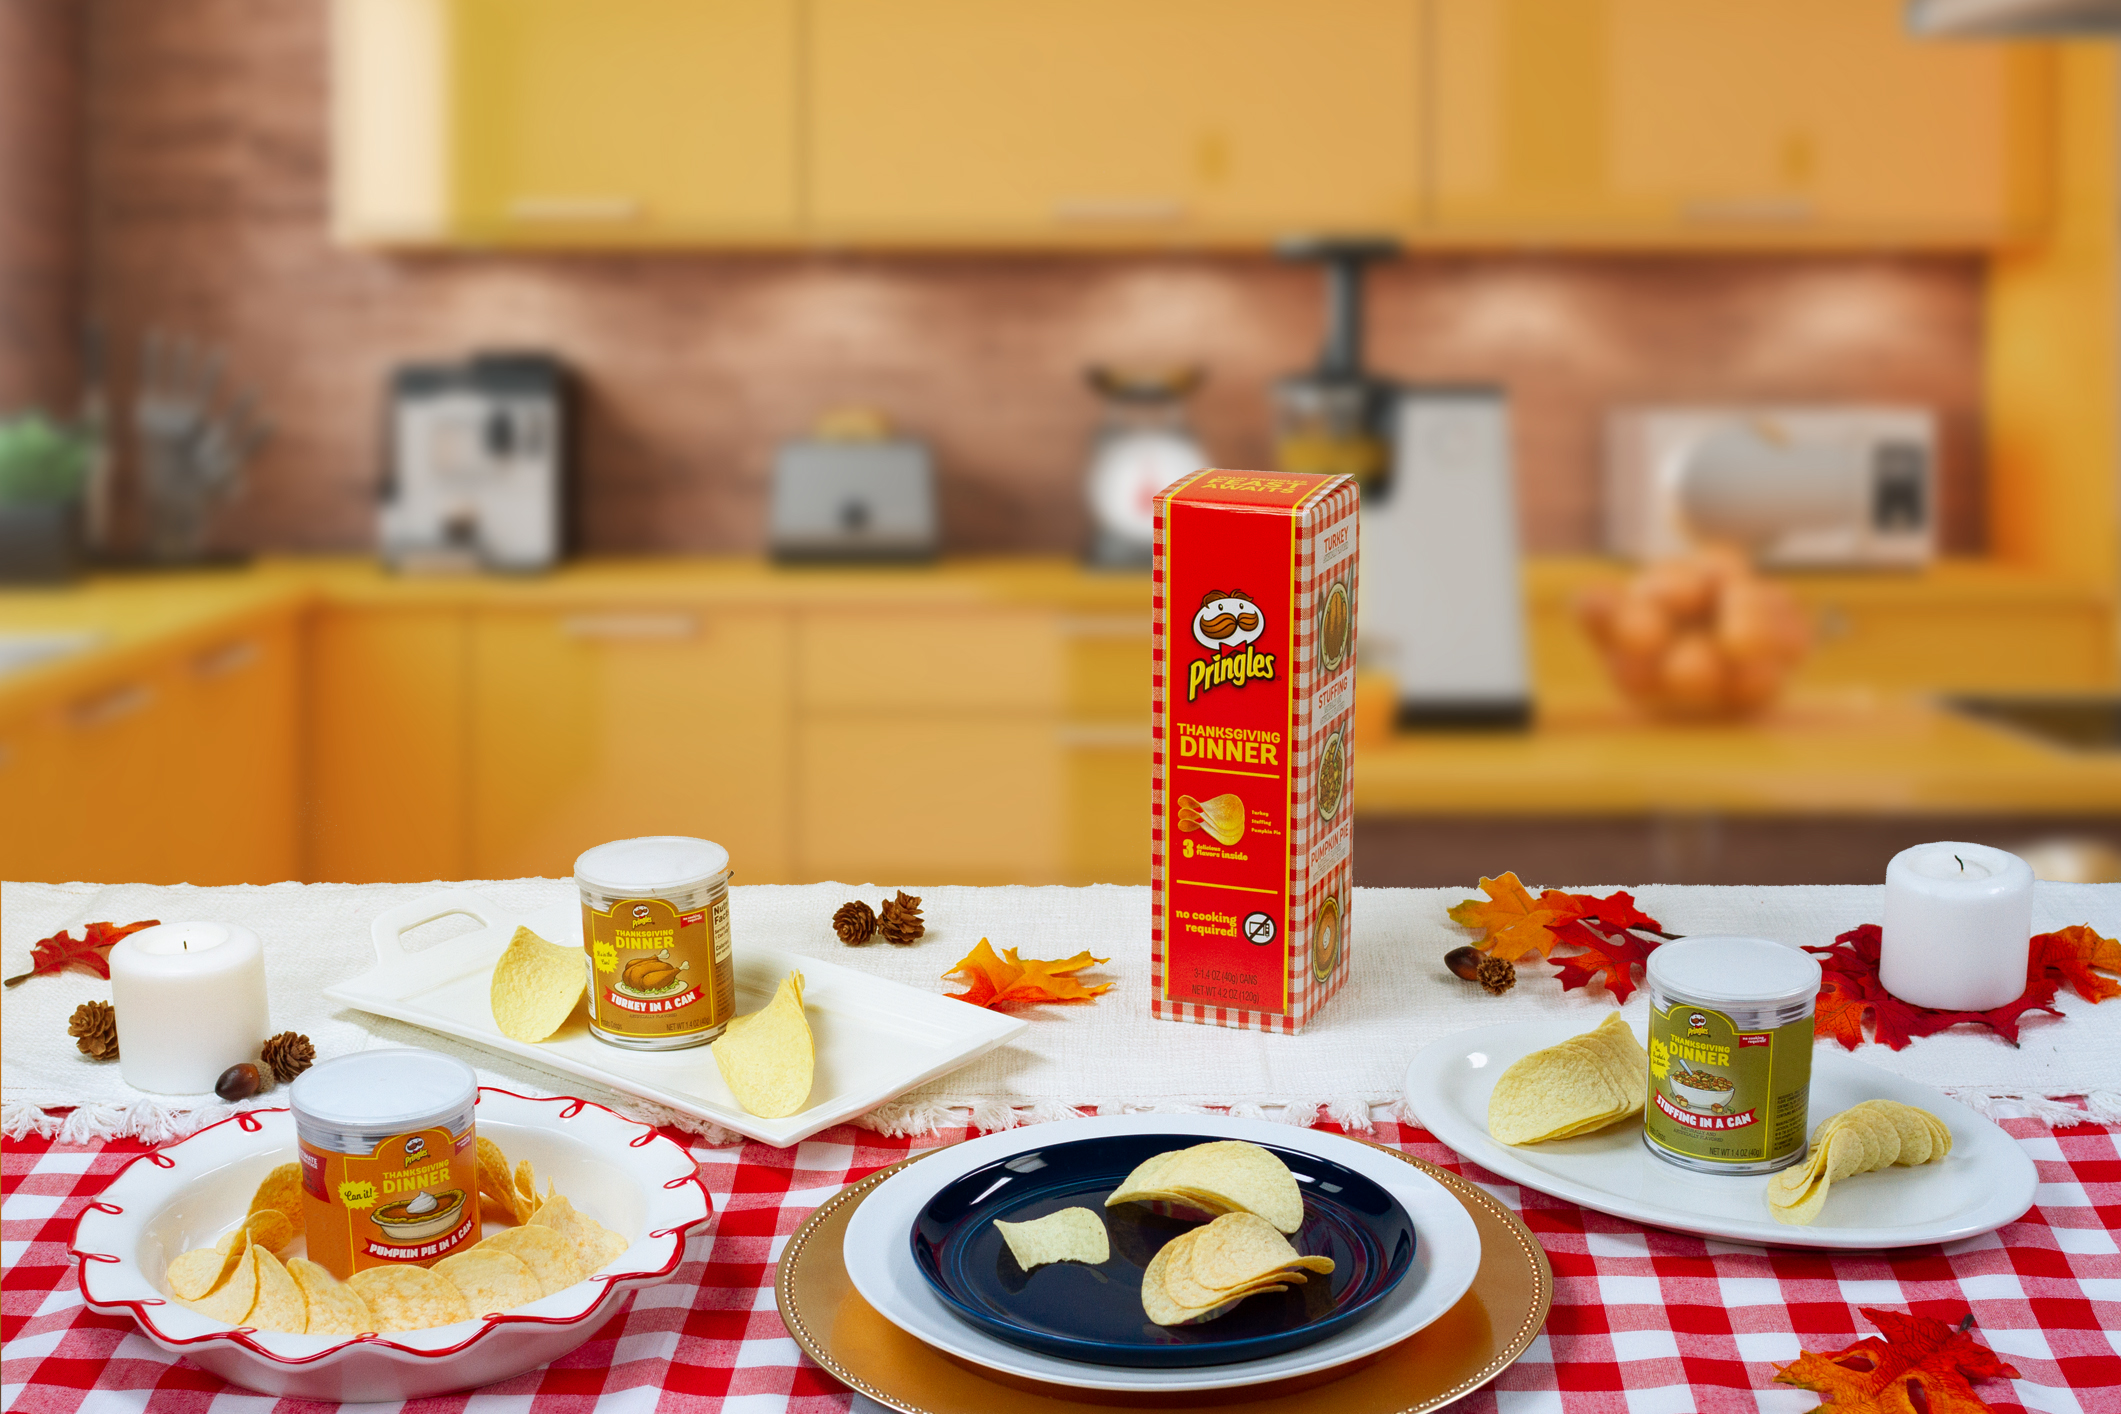 Pringles Thanksgiving Dinner Flavor Chips